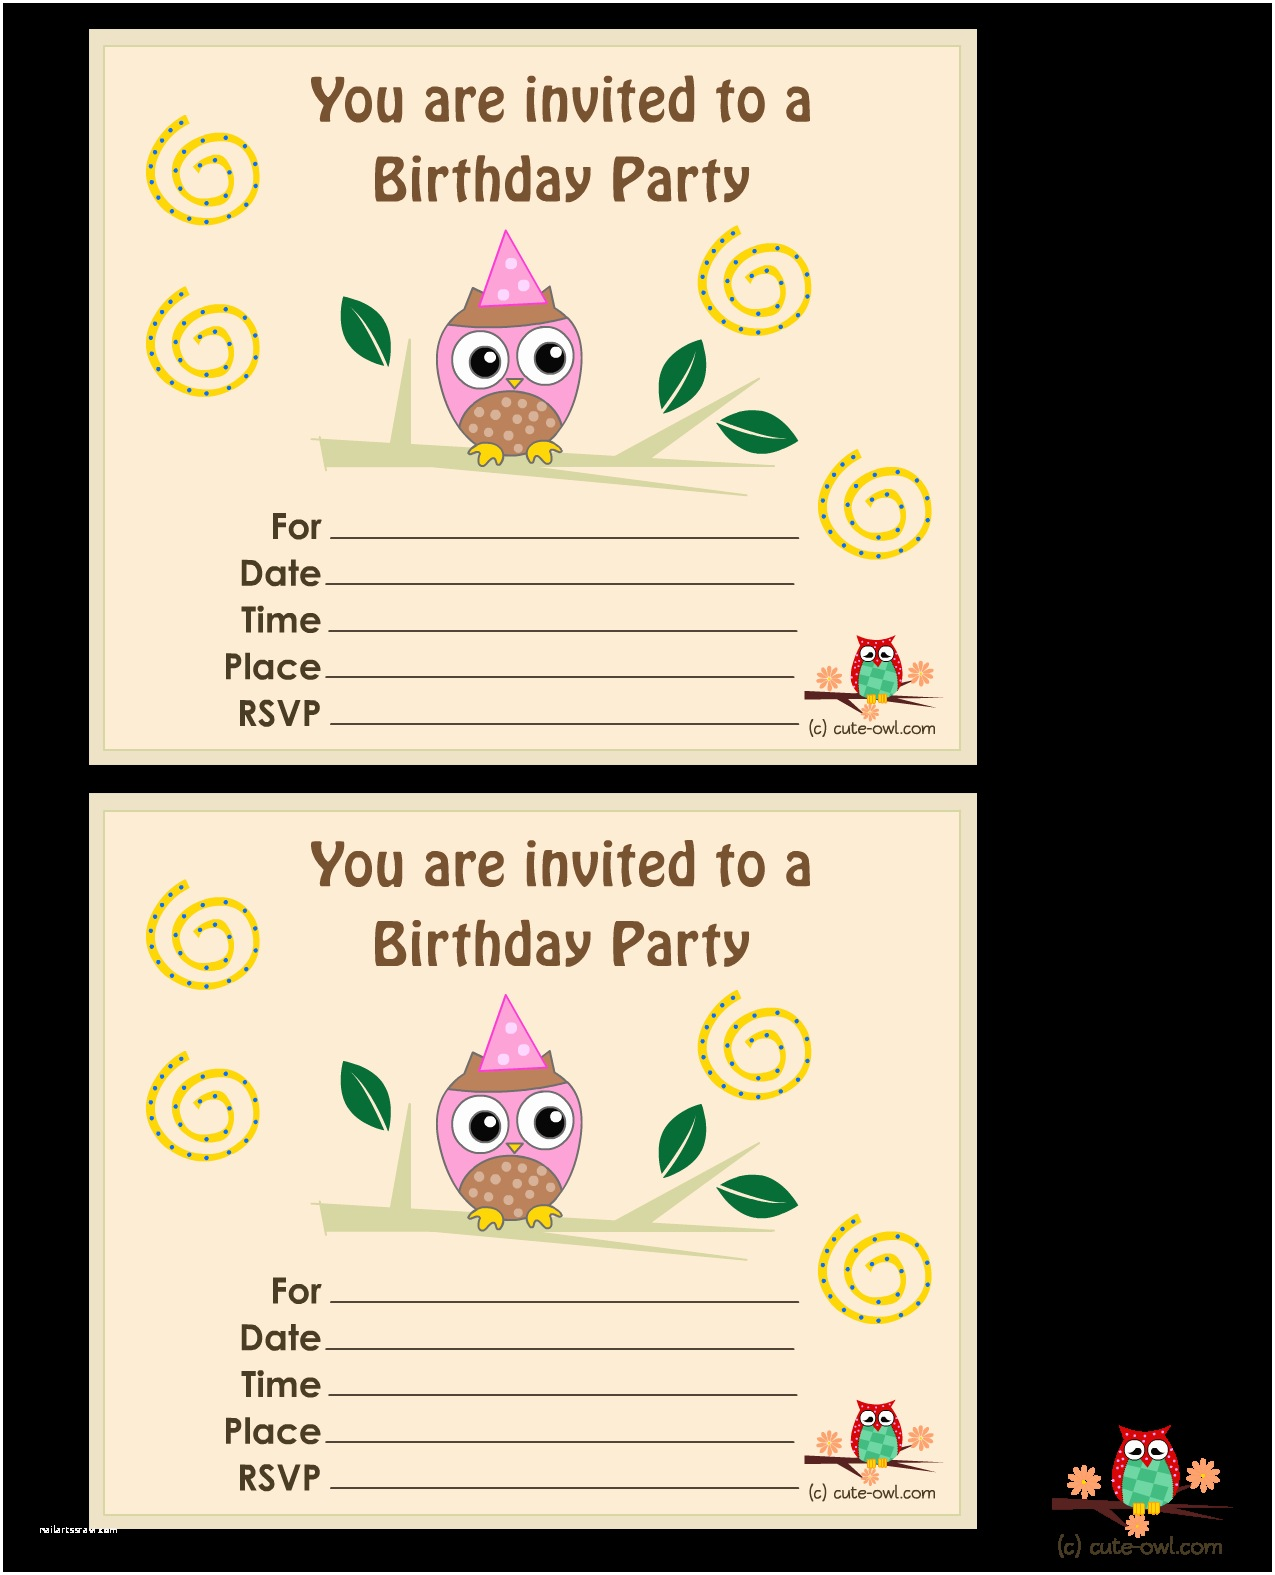 Design Party Invitations top 8 Birthday Party Invitations Printable